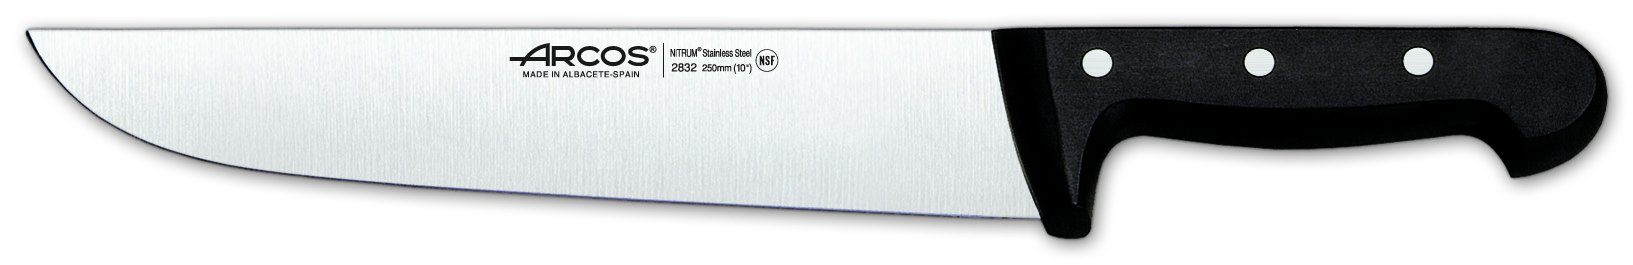 Arcos 10-Inch 250 mm Universal Butcher Knife by ARCOS